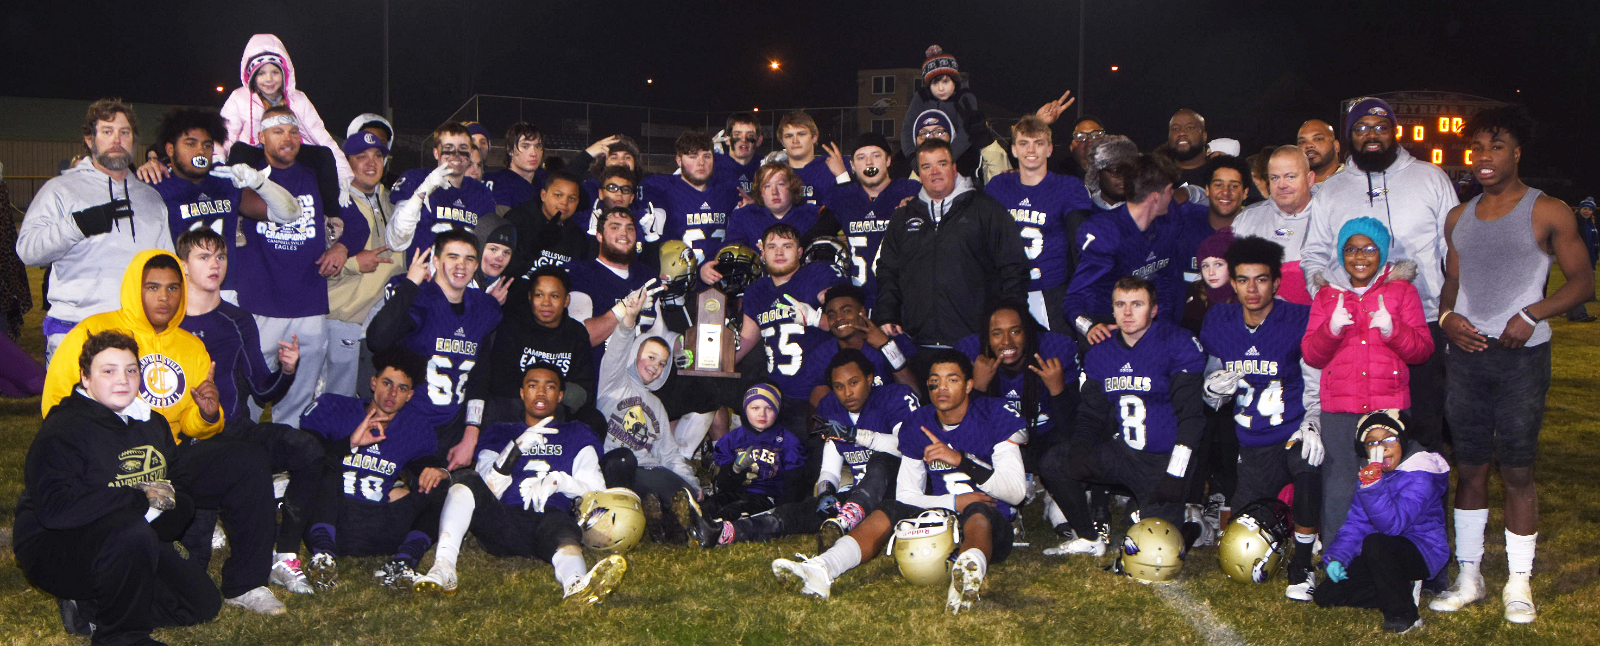 CHS football team wins region championship, makes history